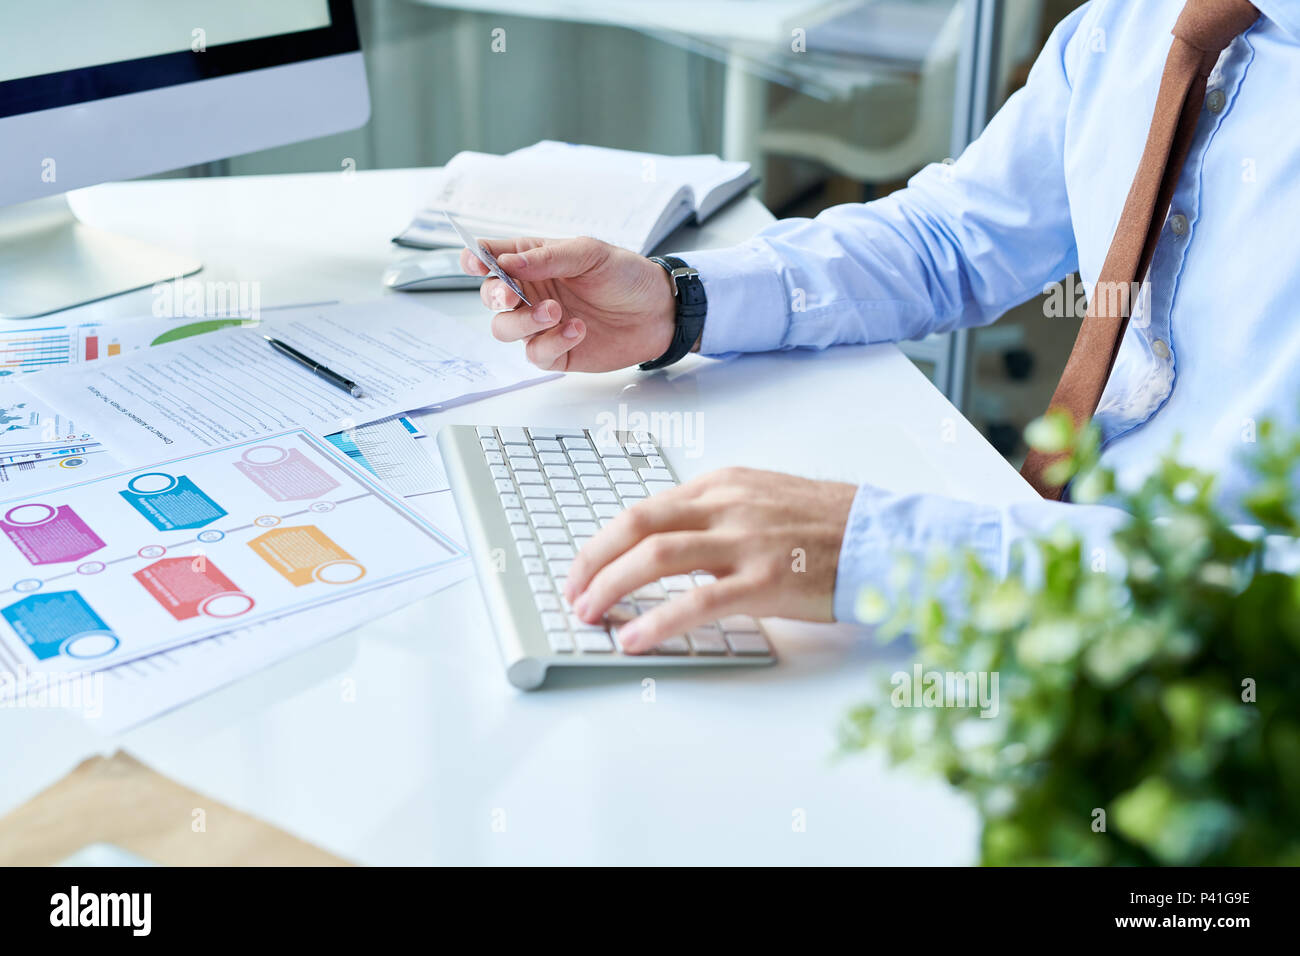 Crop businessman doing onling purchase - Stock Image